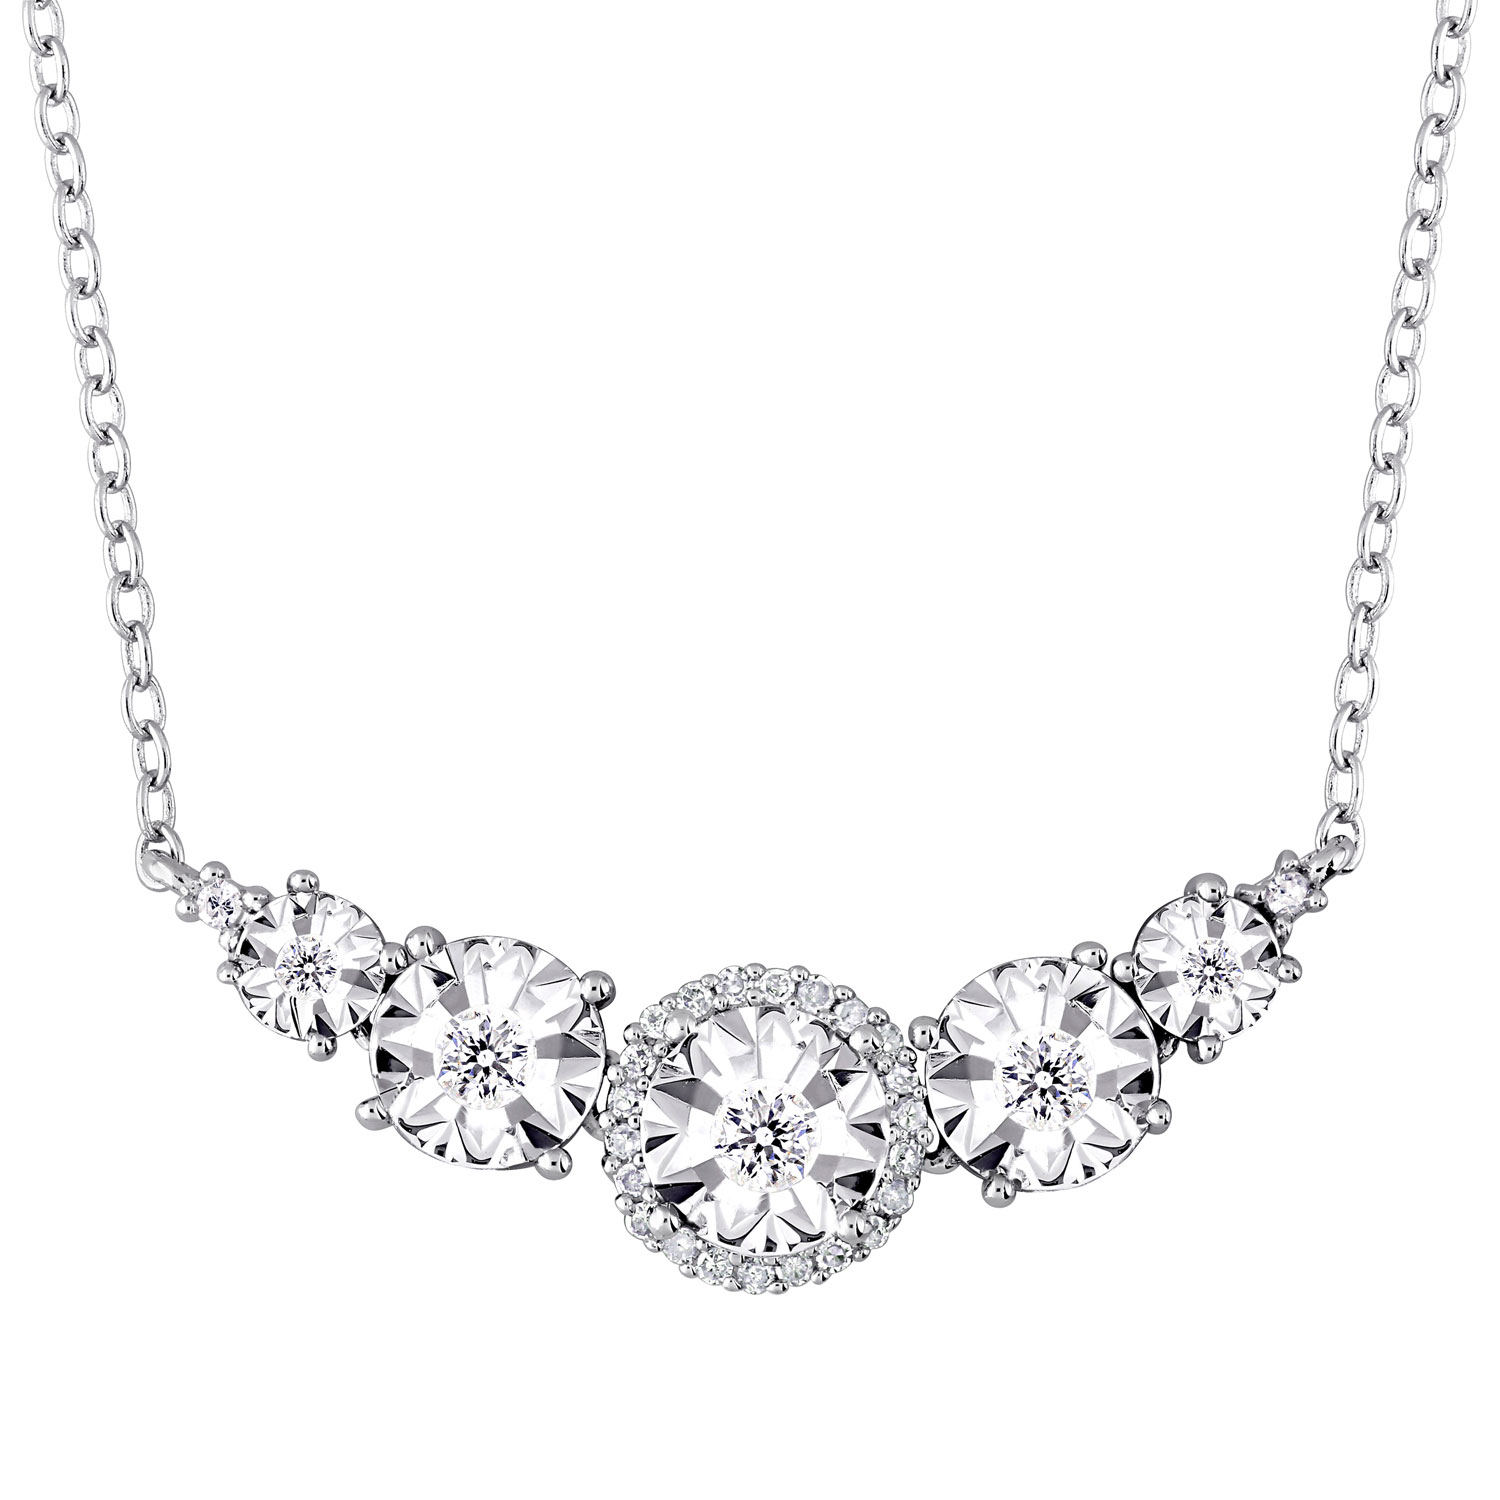 17 inch necklace choose length